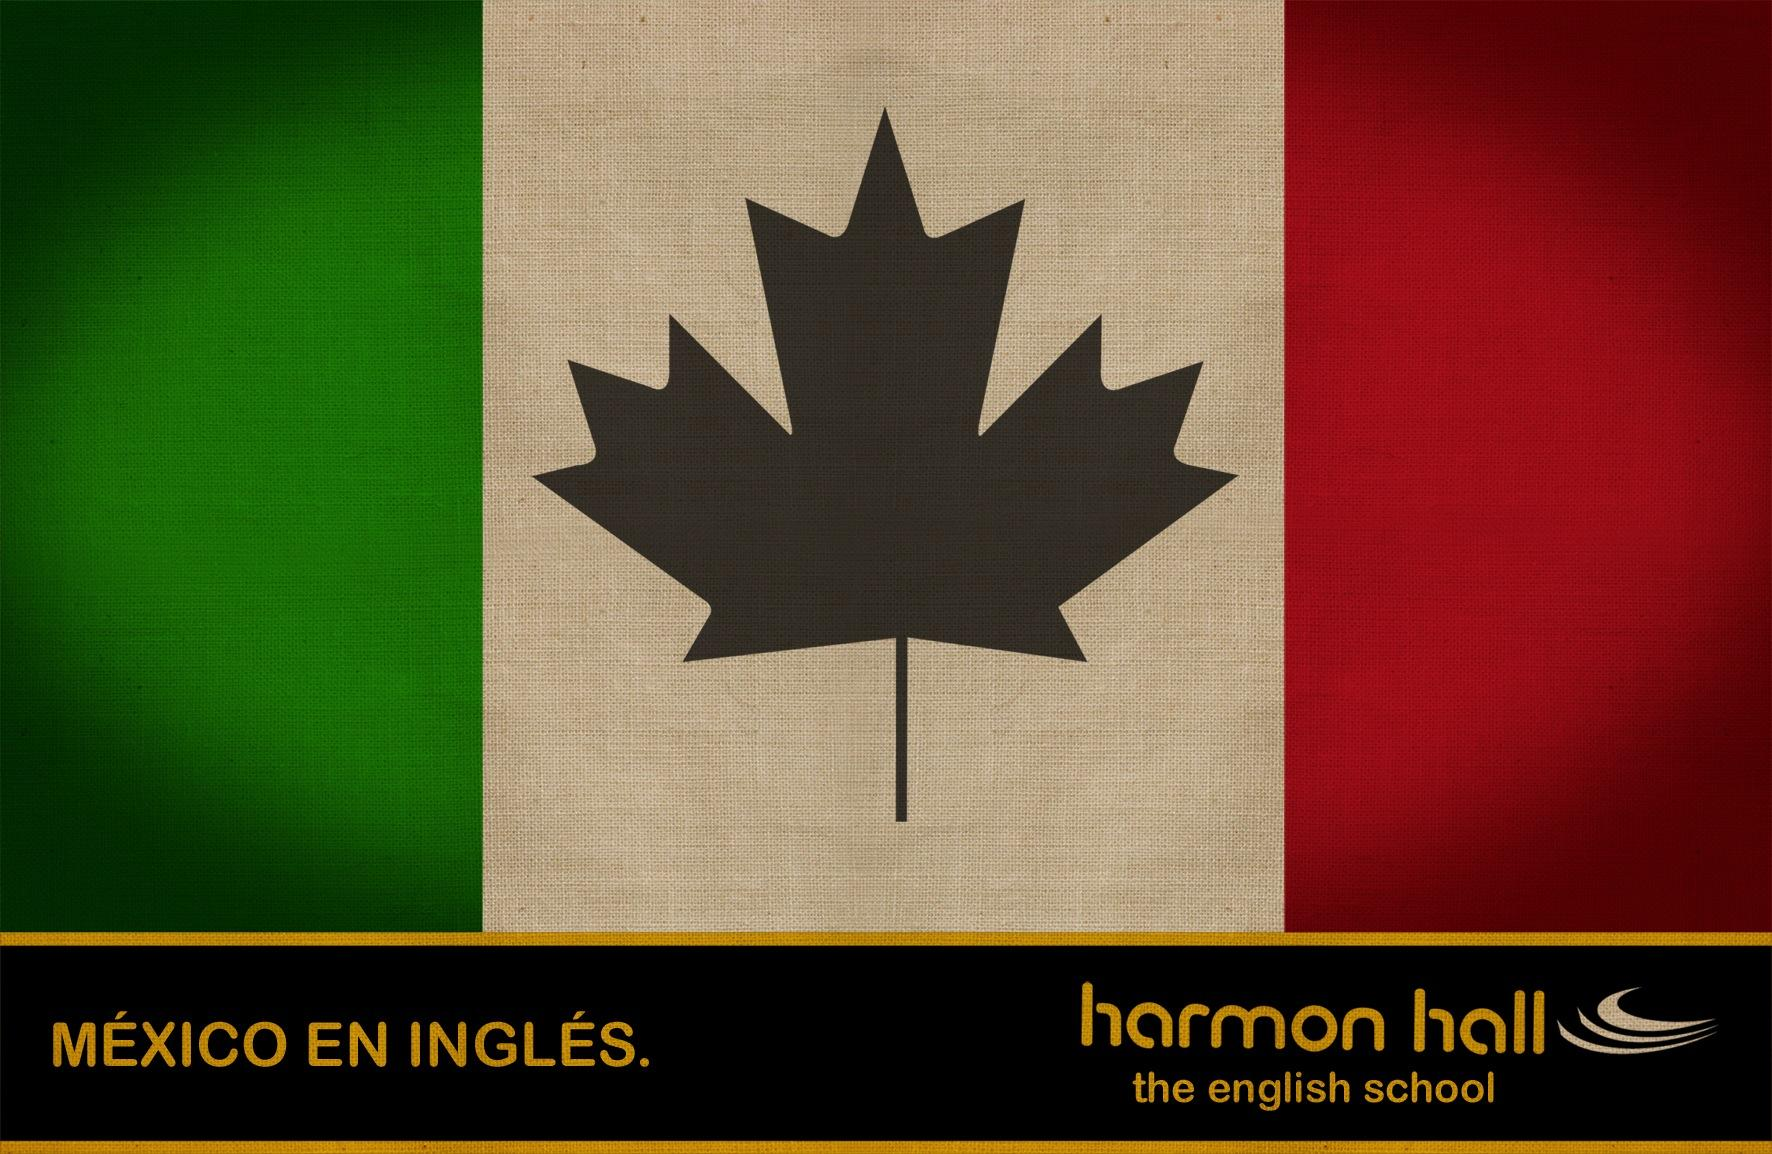 Harmon Hall Print Ad -  Mexico in English, 2